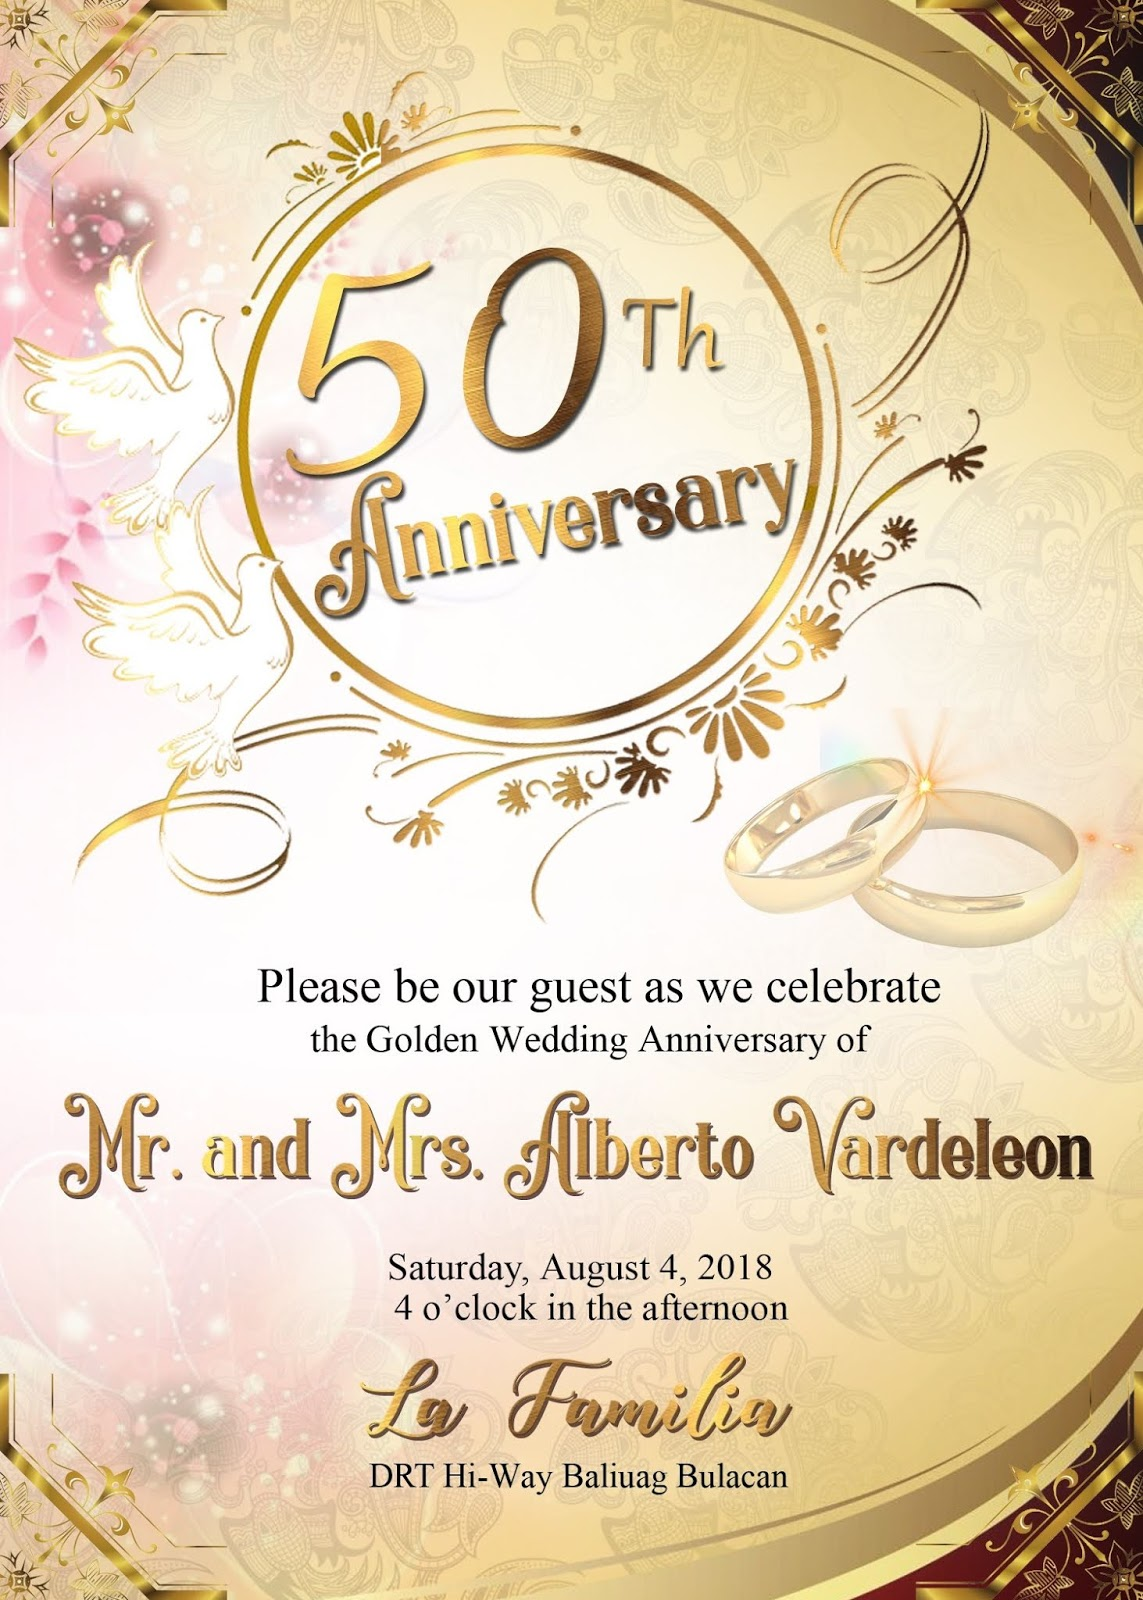 50th wedding anniversary sample invitation card - GET LAYOUT TEMPLATES THEMES AND DESIGN